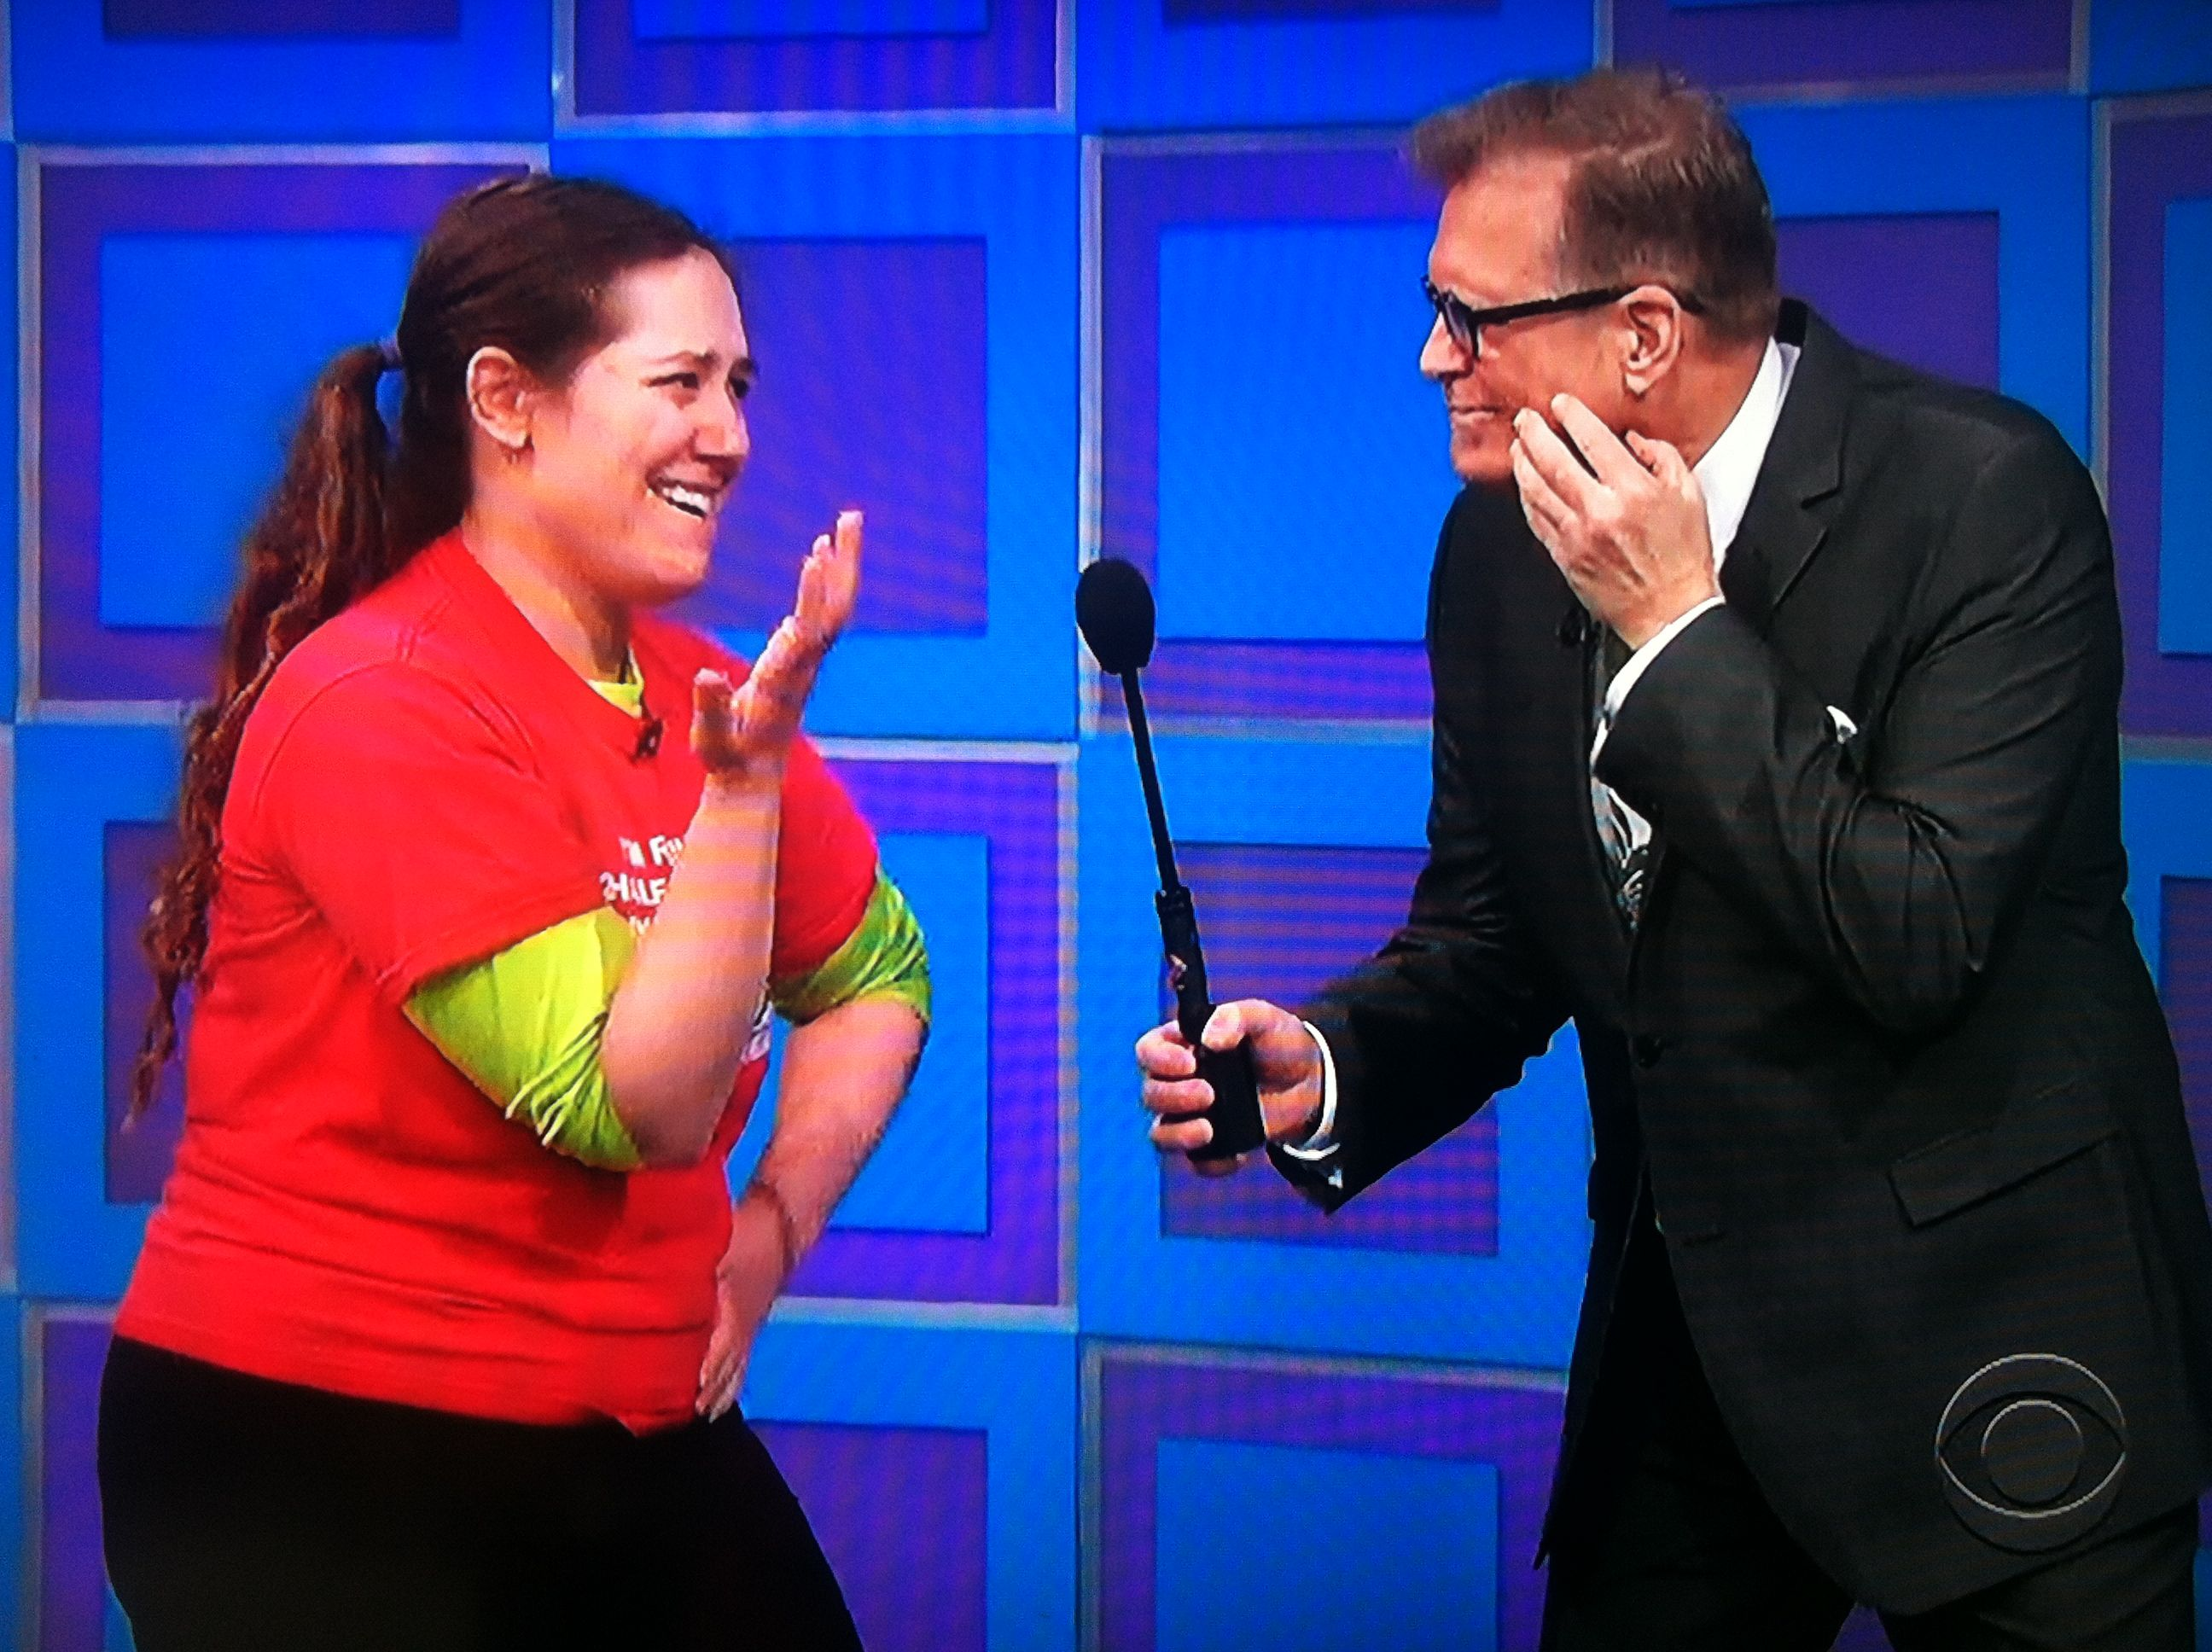 Aurora De Lucia and Drew Carey with their thinking faces on at The Price is Right